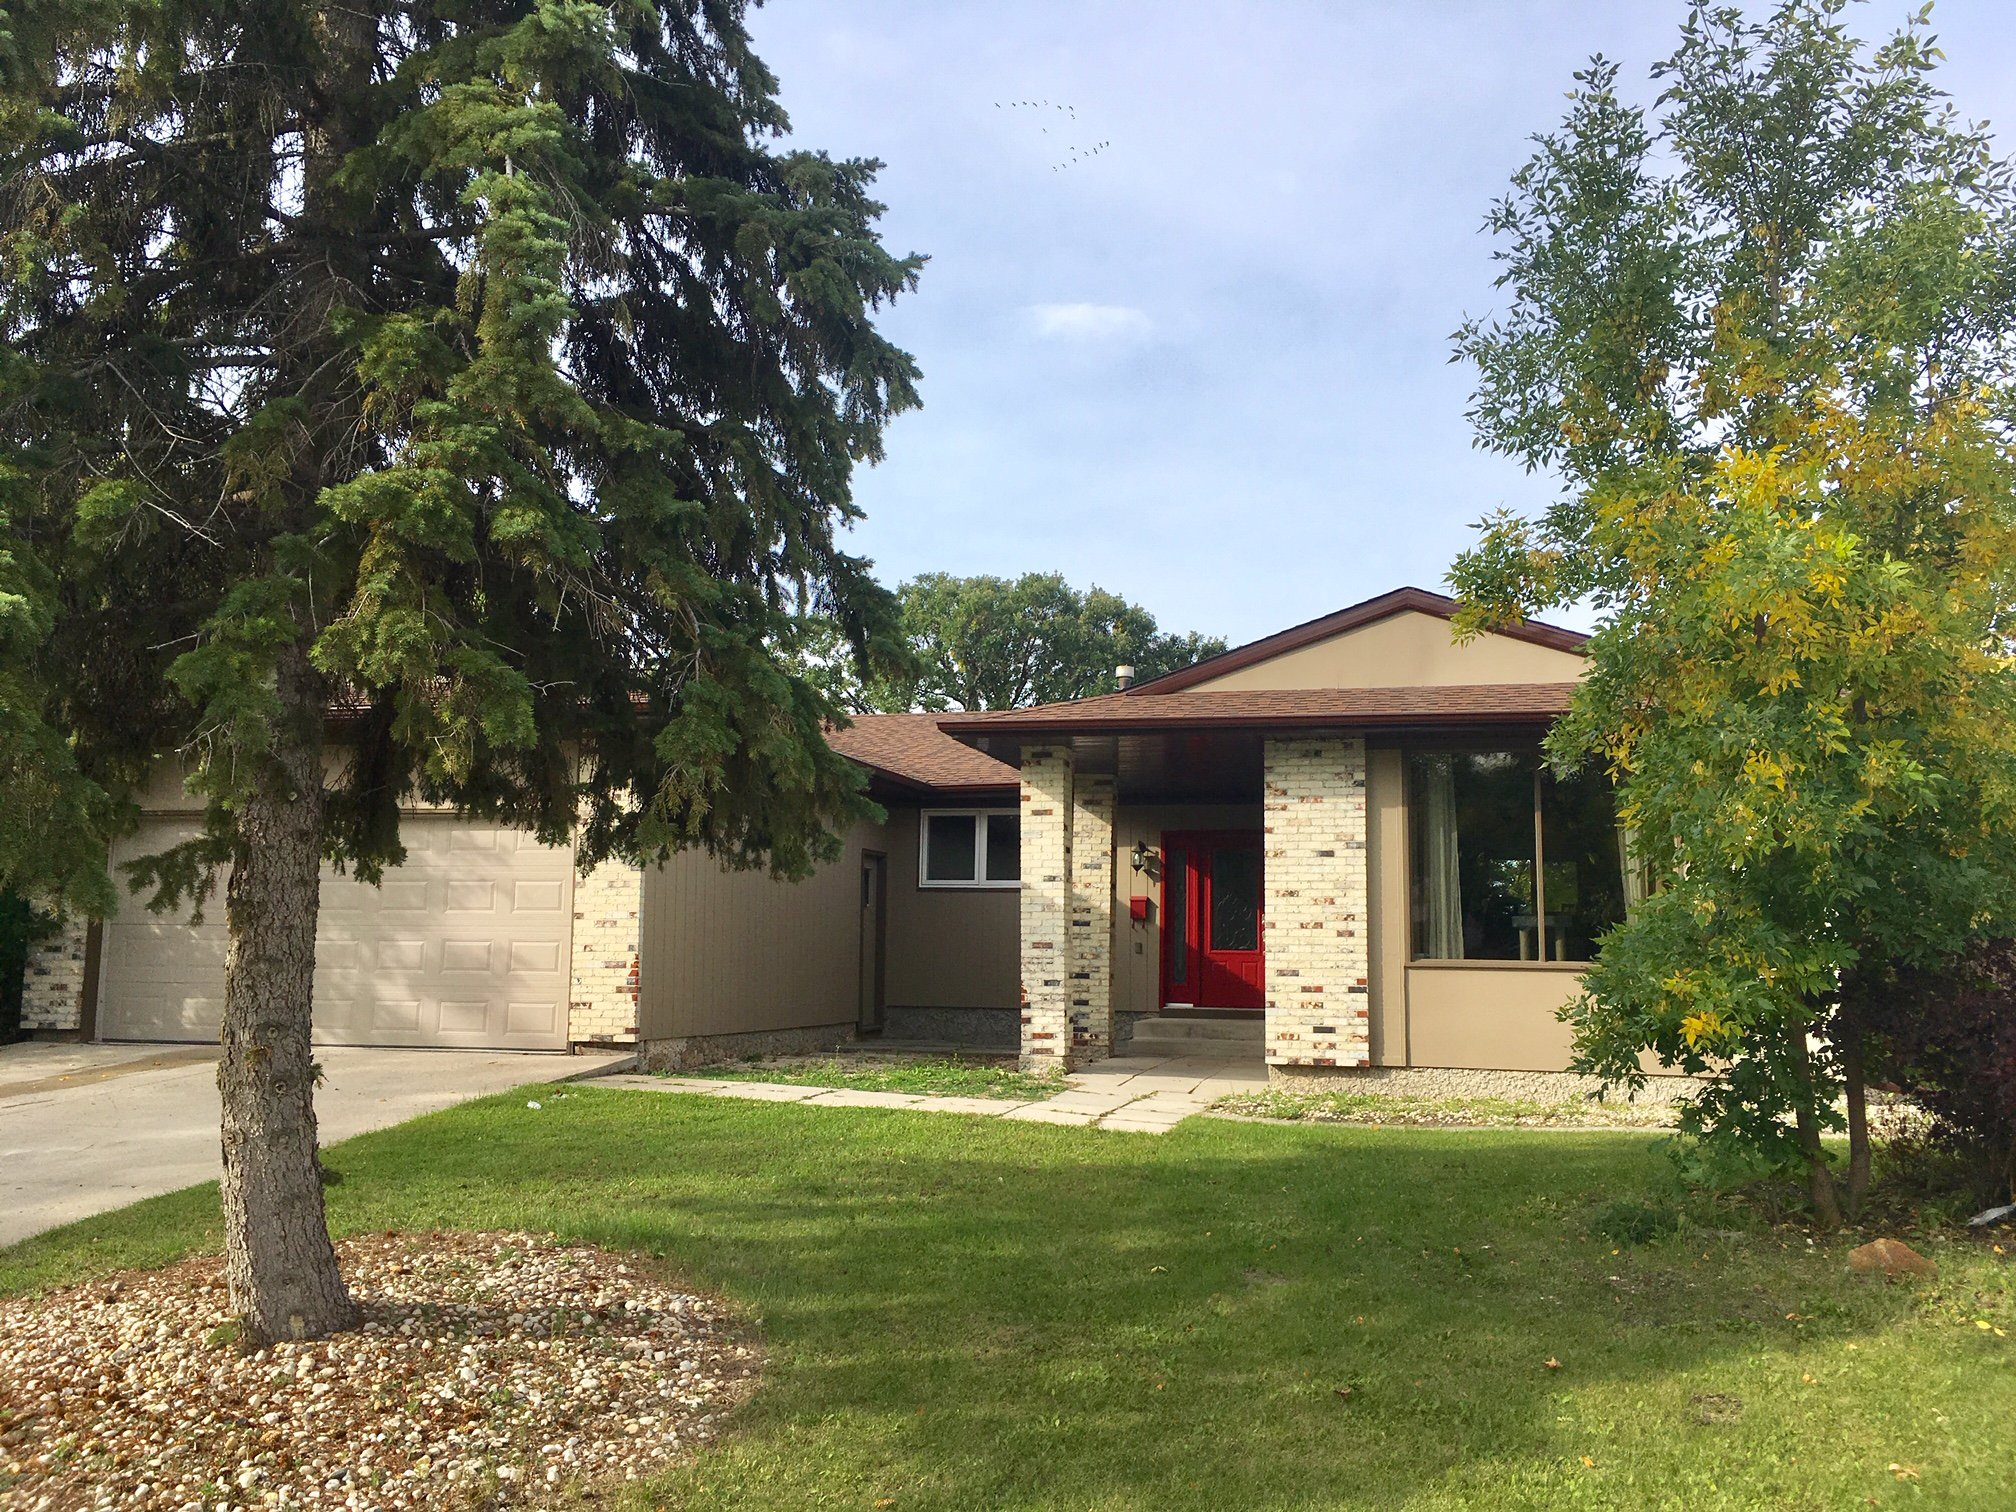 Main Photo: 275 Barker Boulevard in Winnipeg: River West Park Single Family Detached for sale ()  : MLS®# 1925838